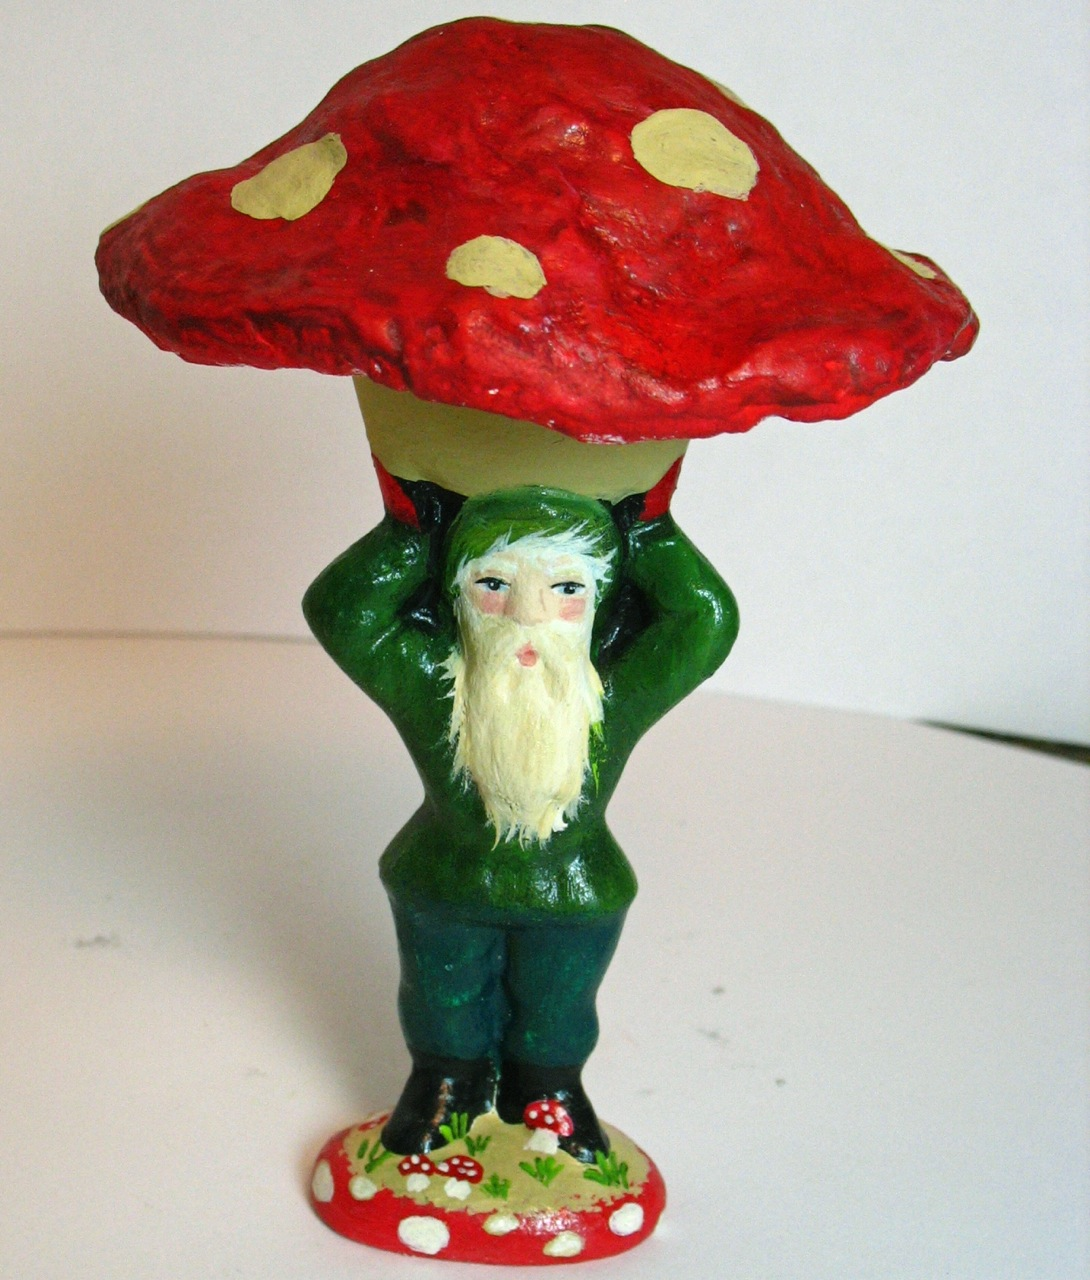 Paper mache Gnome/Mushroom from an antique chocolate mold